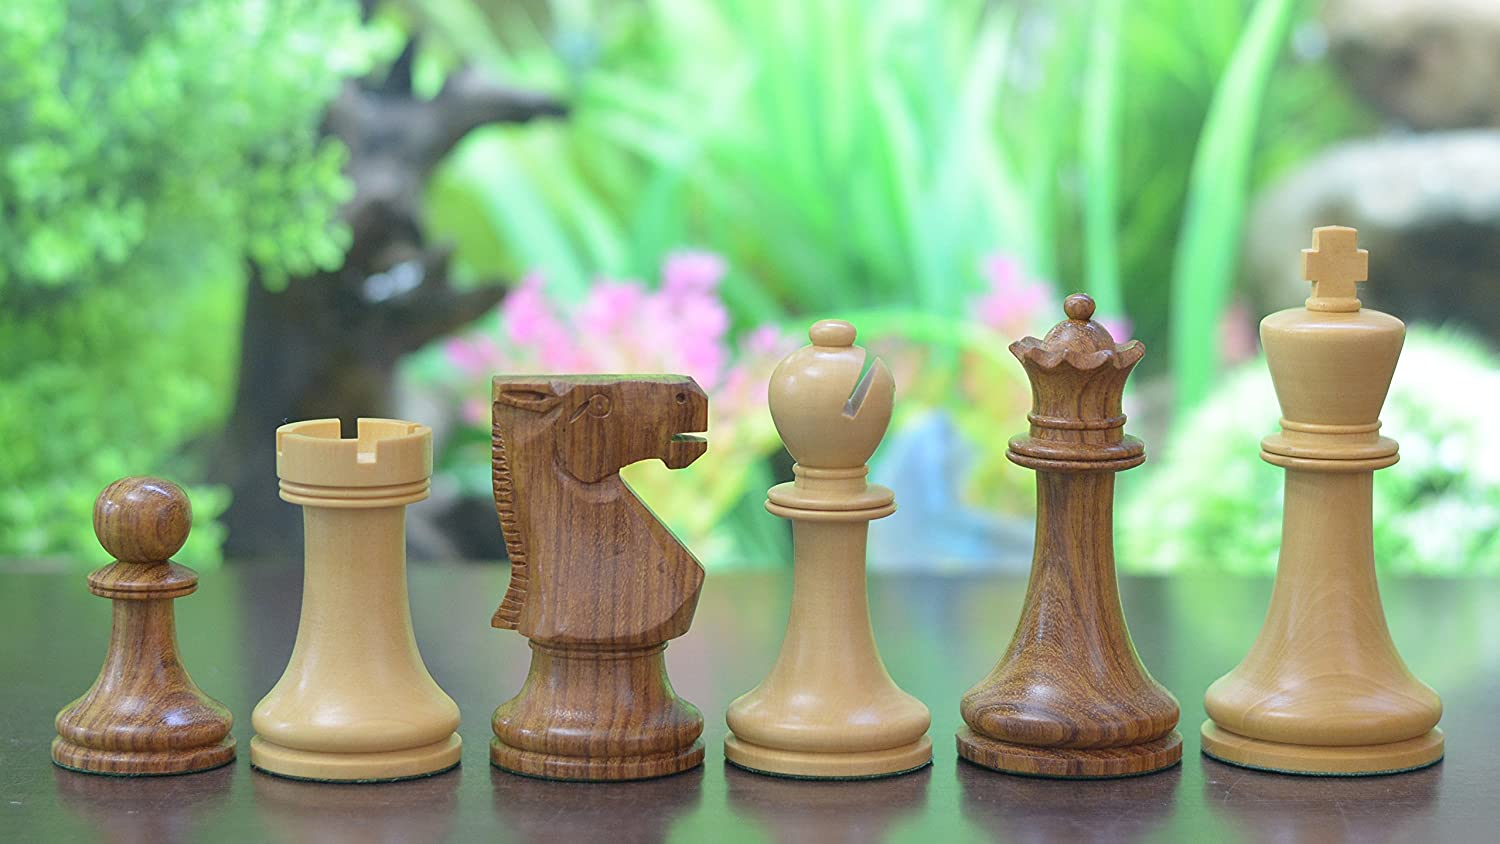 【売り切り御免!】 Chessbazaar Chess The Staunton Staunton Series Weighted Chess Pieces In Shesham Chessbazaar & Box Wood B00OHMQKBA, ポールワークス:6c23f8b2 --- gfarquitetura.com